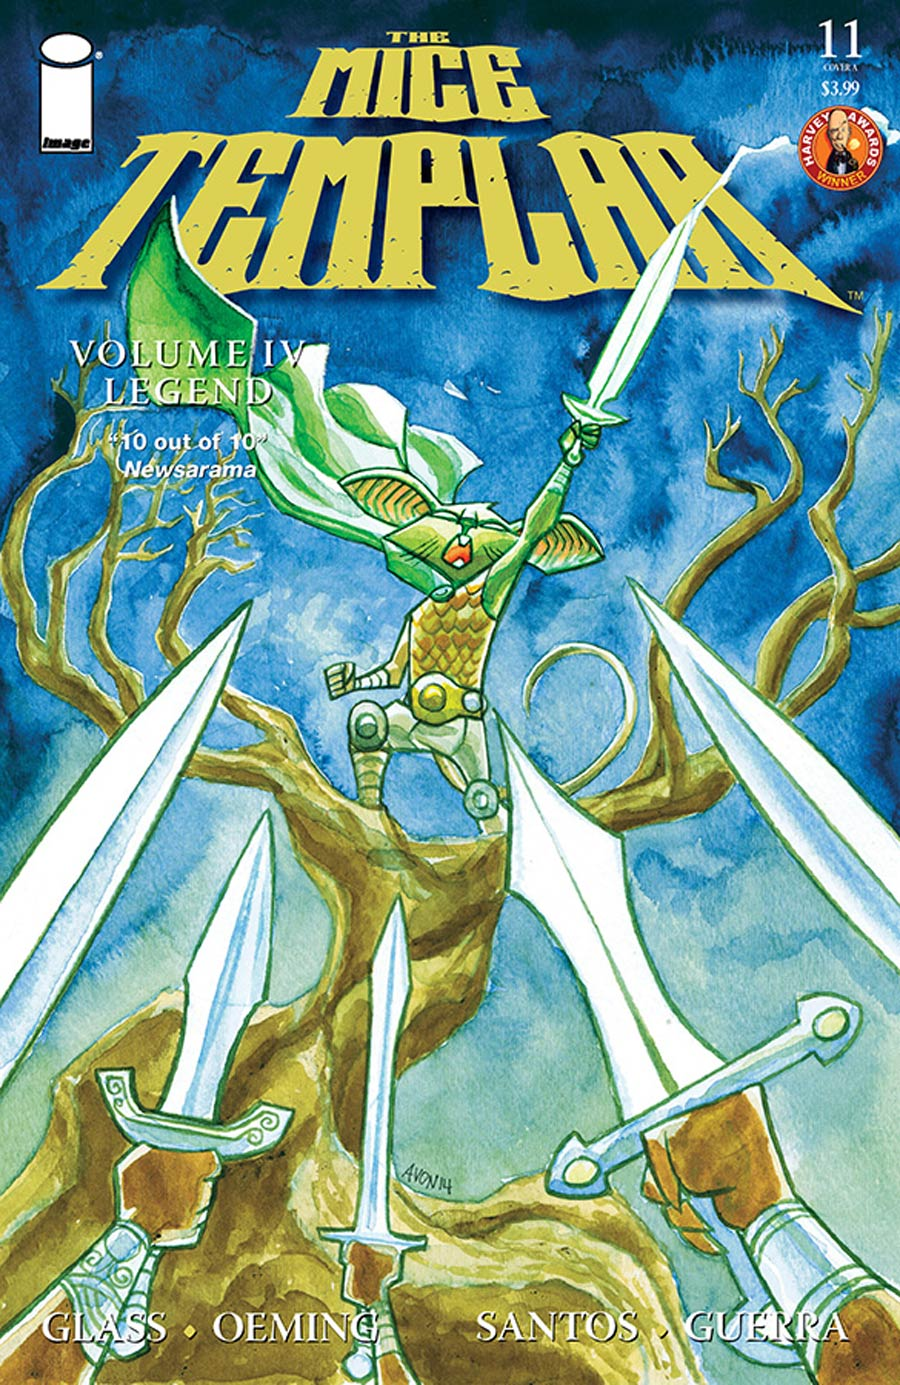 Mice Templar Vol 4 Legend #11 Cover A Michael Avon Oeming